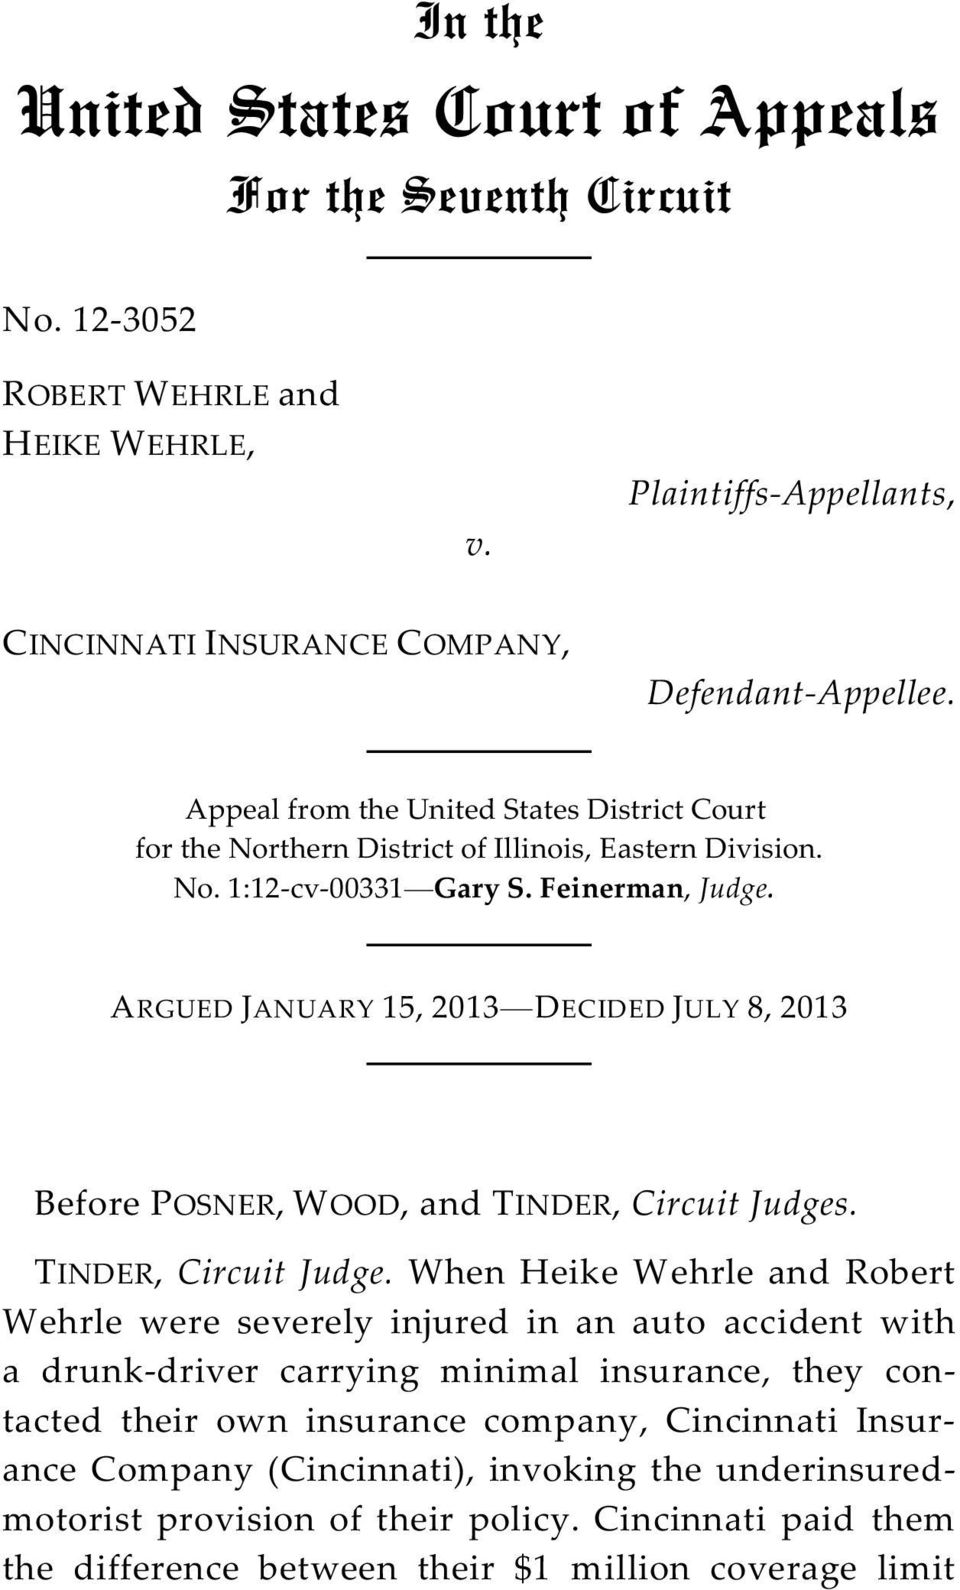 ARGUED JANUARY 15, 2013 DECIDED JULY 8, 2013 Before POSNER, WOOD, and TINDER, Circuit Judges